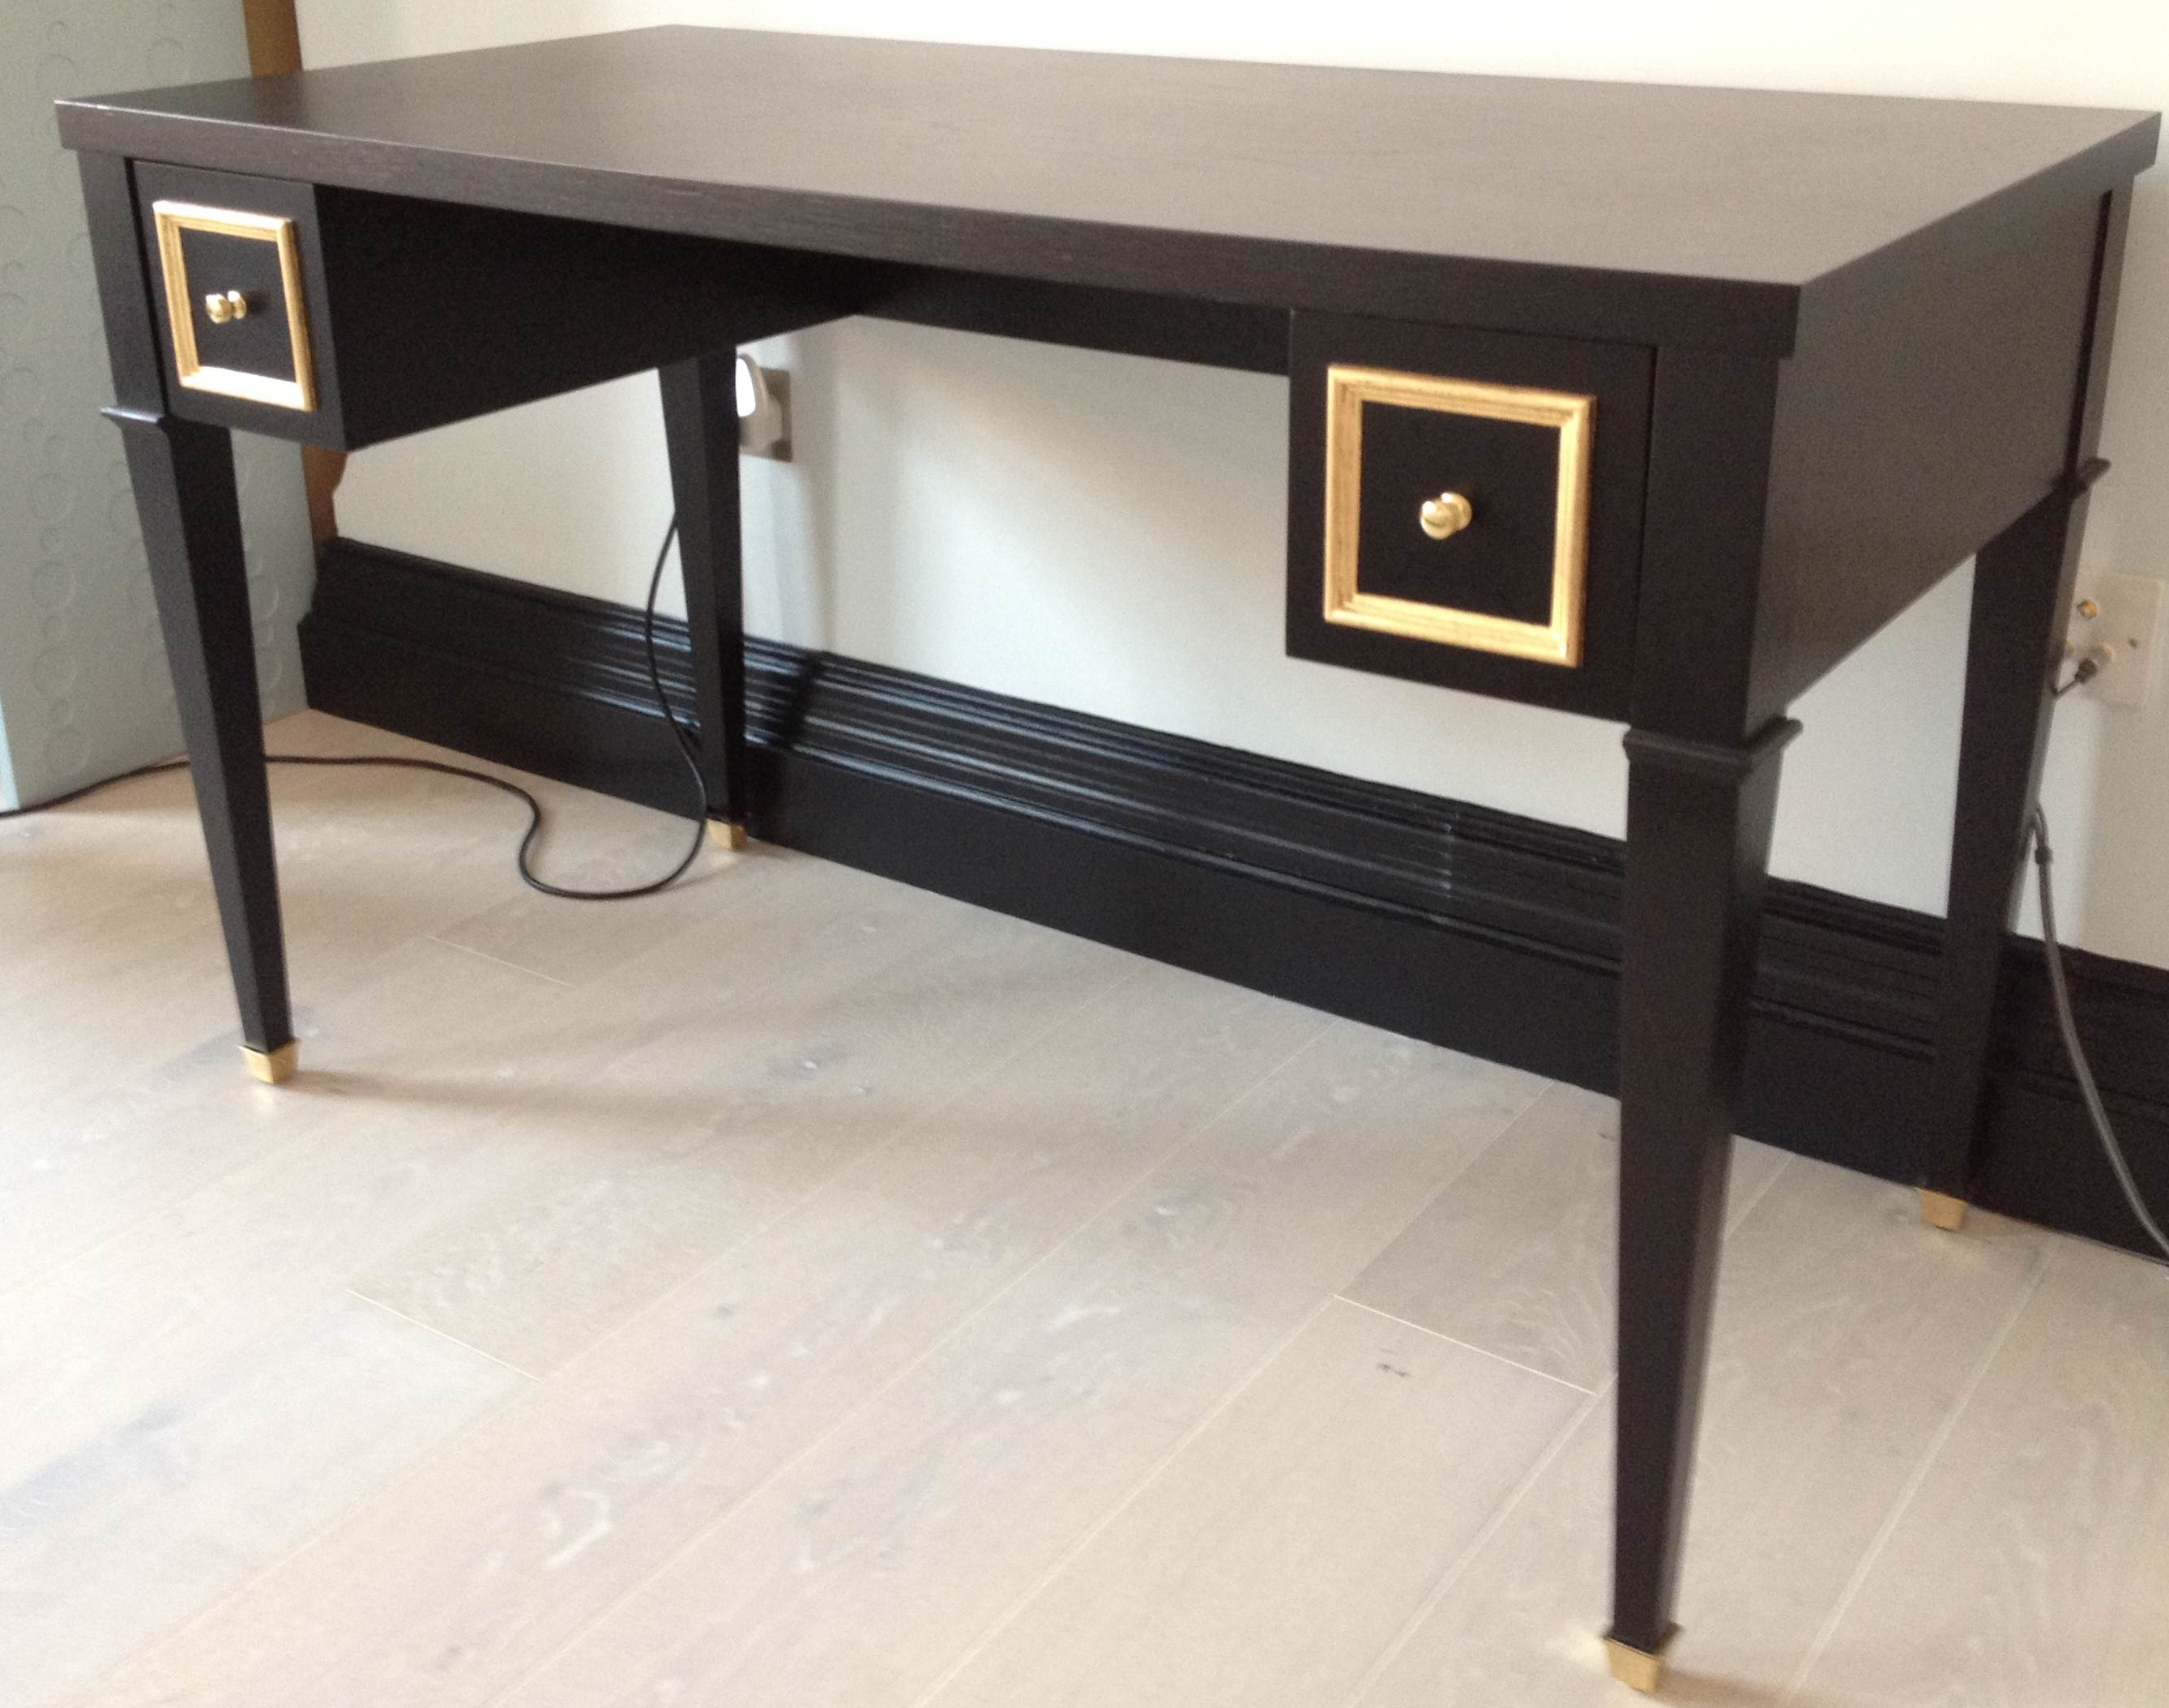 bespoke furniture specialists almost essential london